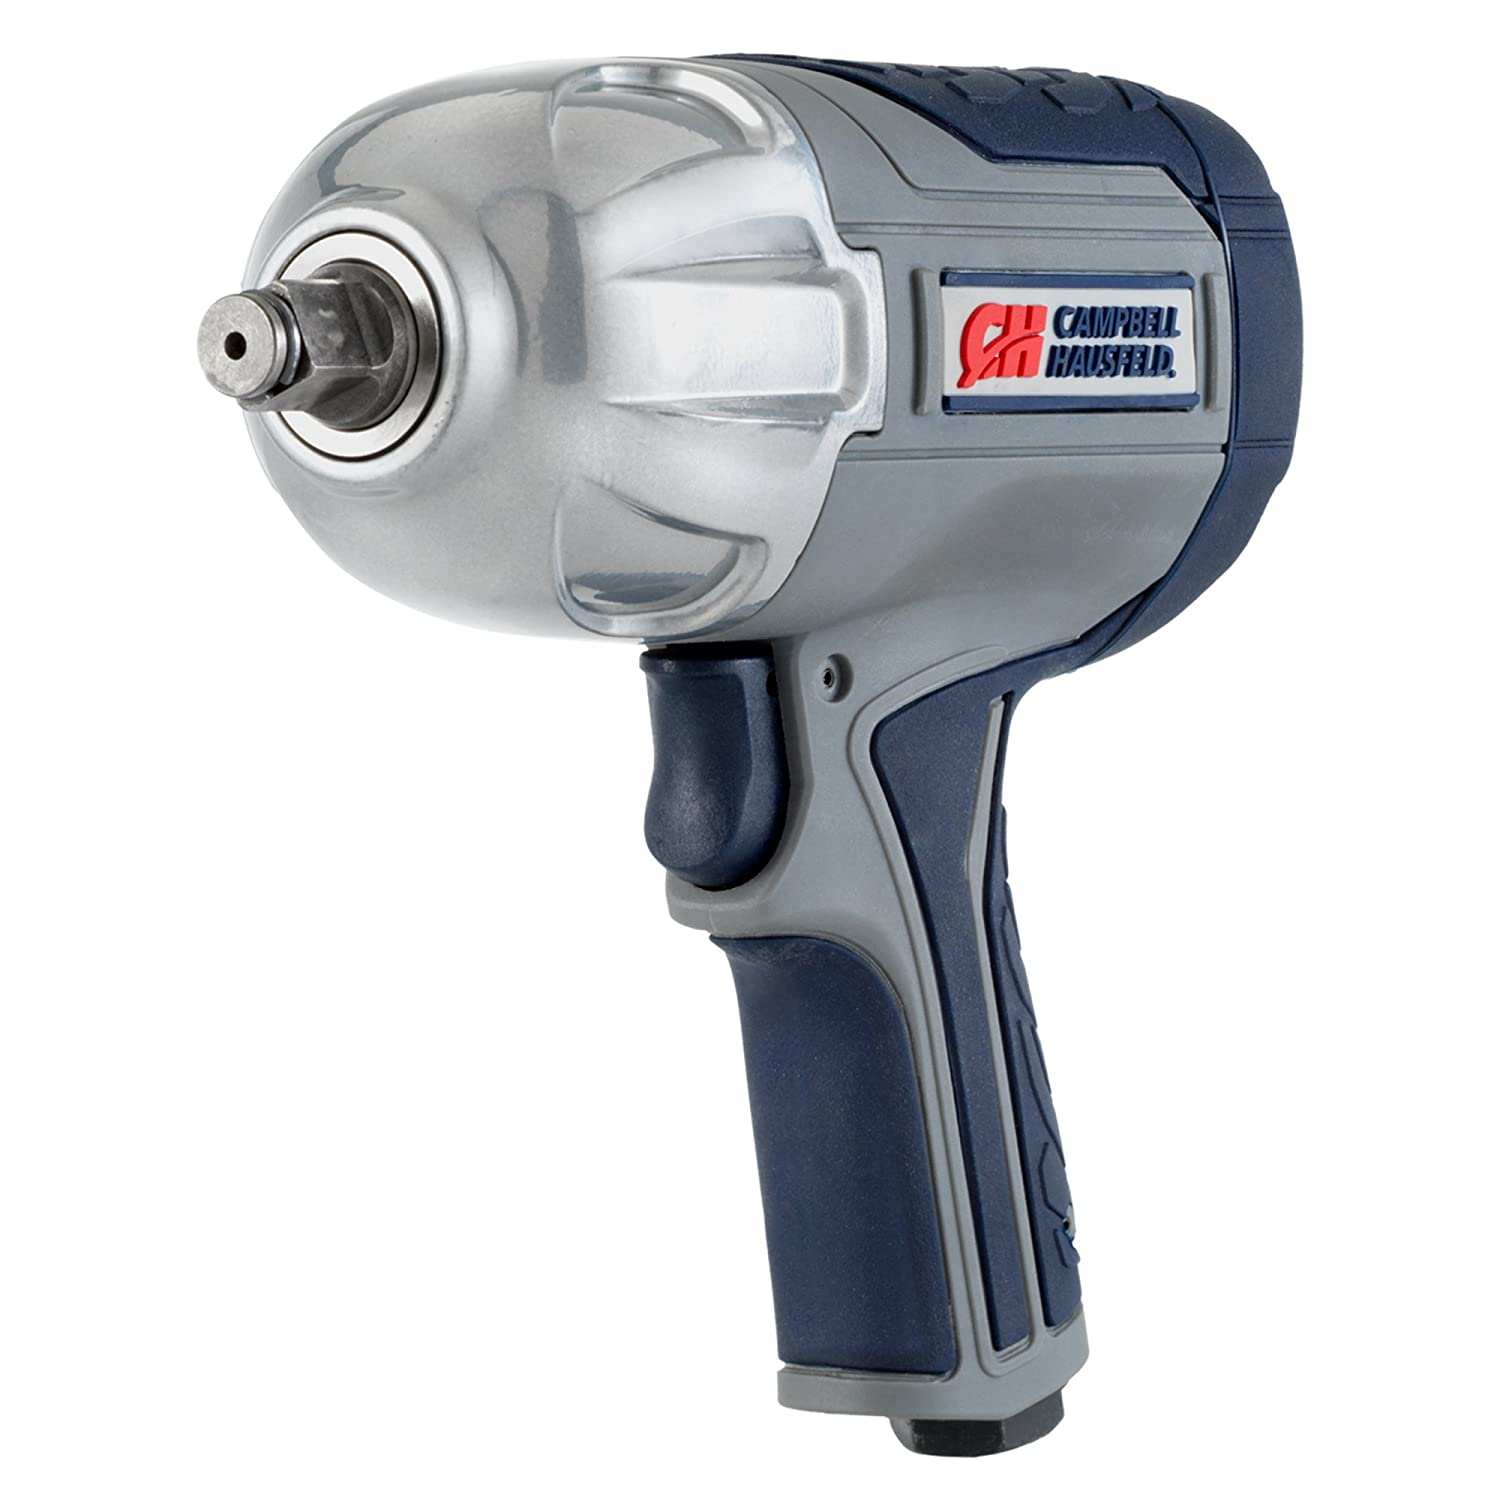 Campbell Hausfeld XT002000 Air Impact Wrench Twin Hammer Impact Driver with Composite Body and Comfort Grip, 1/2""